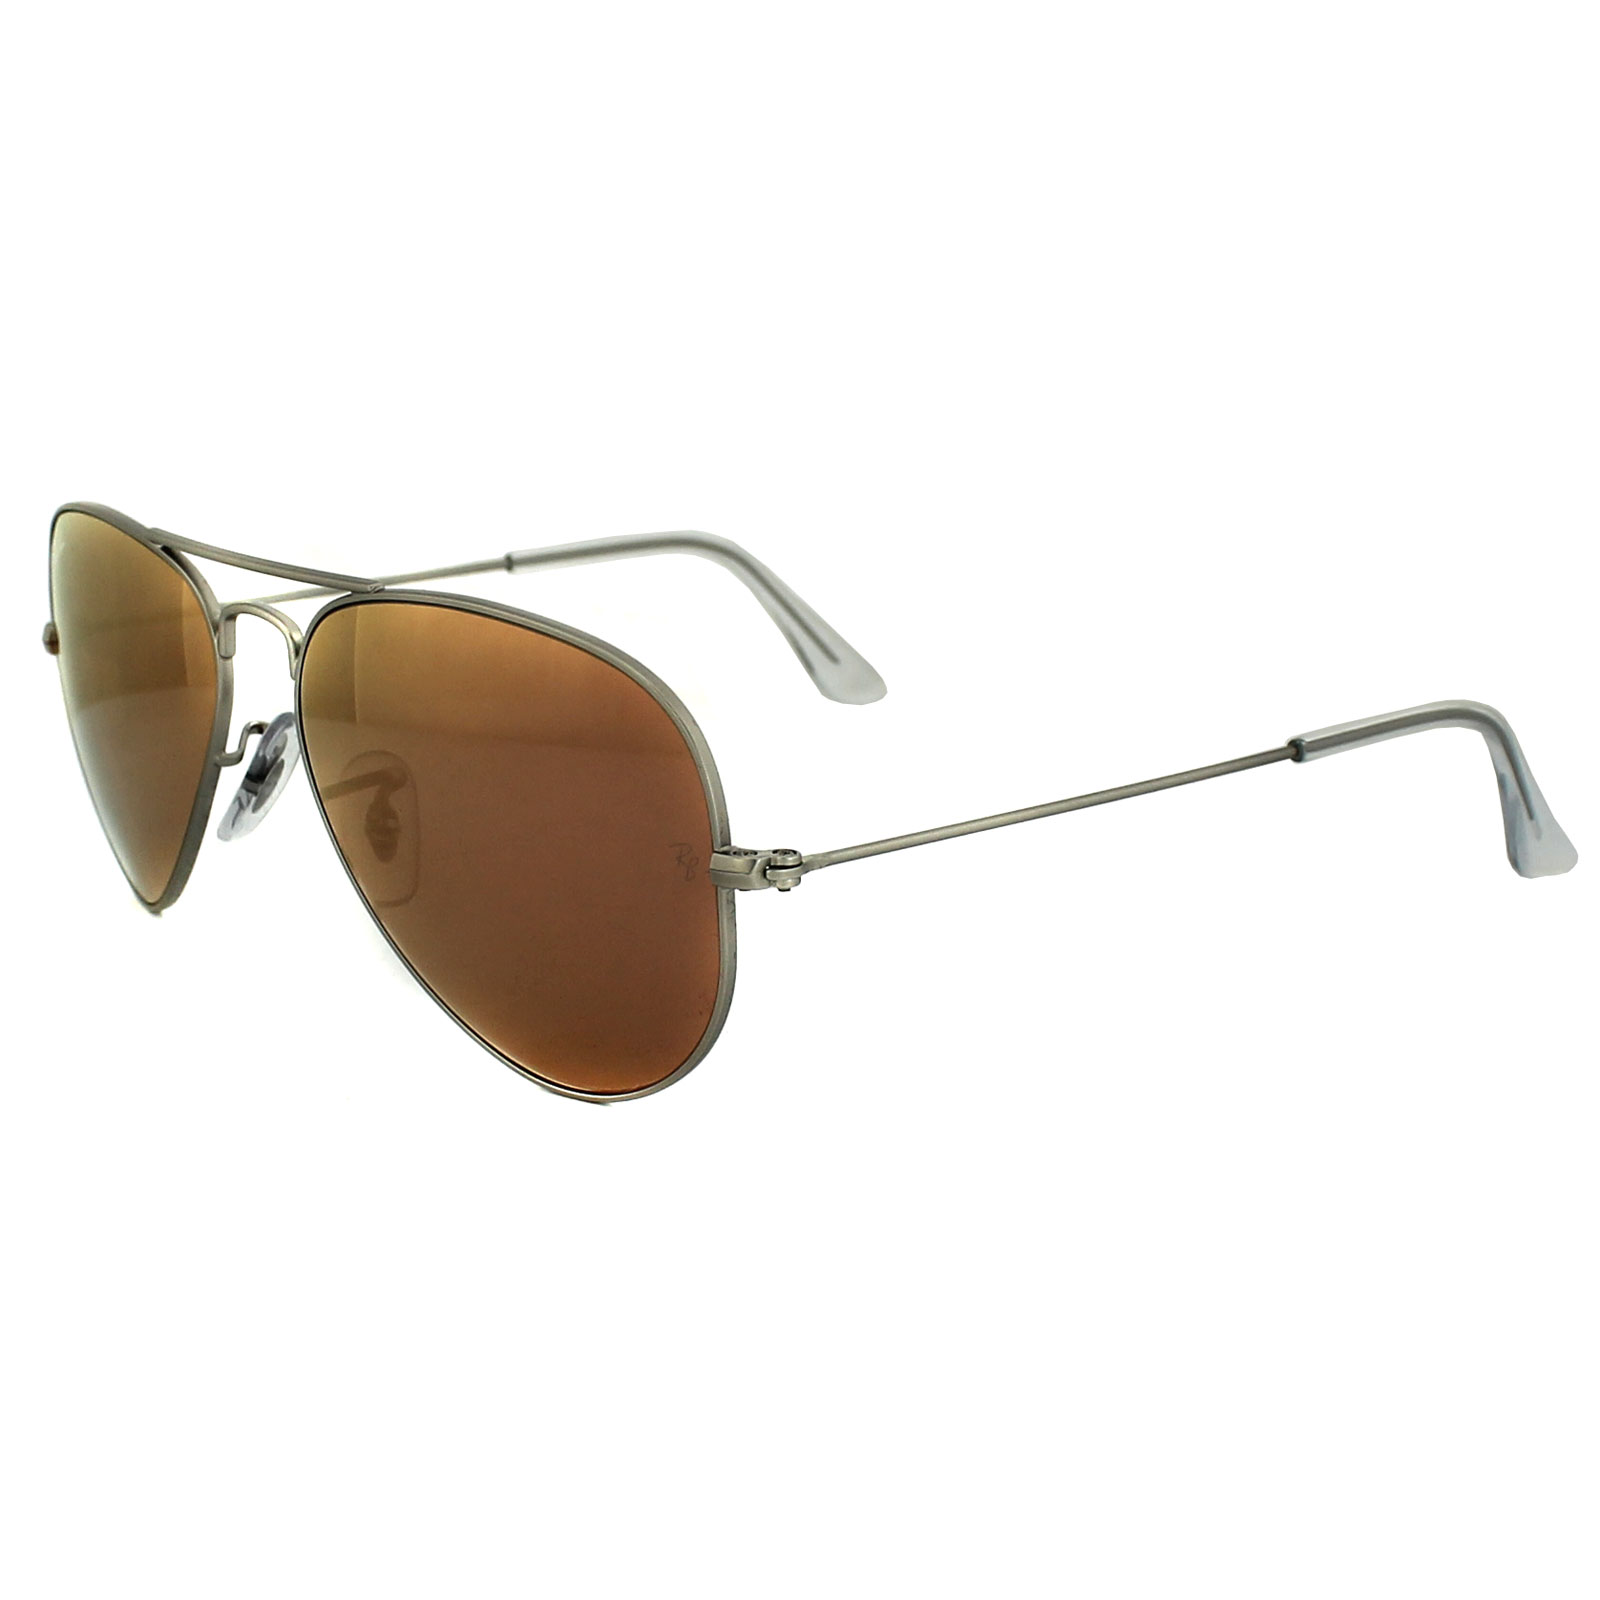 ray ban sunglasses aviator 3025 019 z2 silver brown mirror pink 55mm ebay. Black Bedroom Furniture Sets. Home Design Ideas